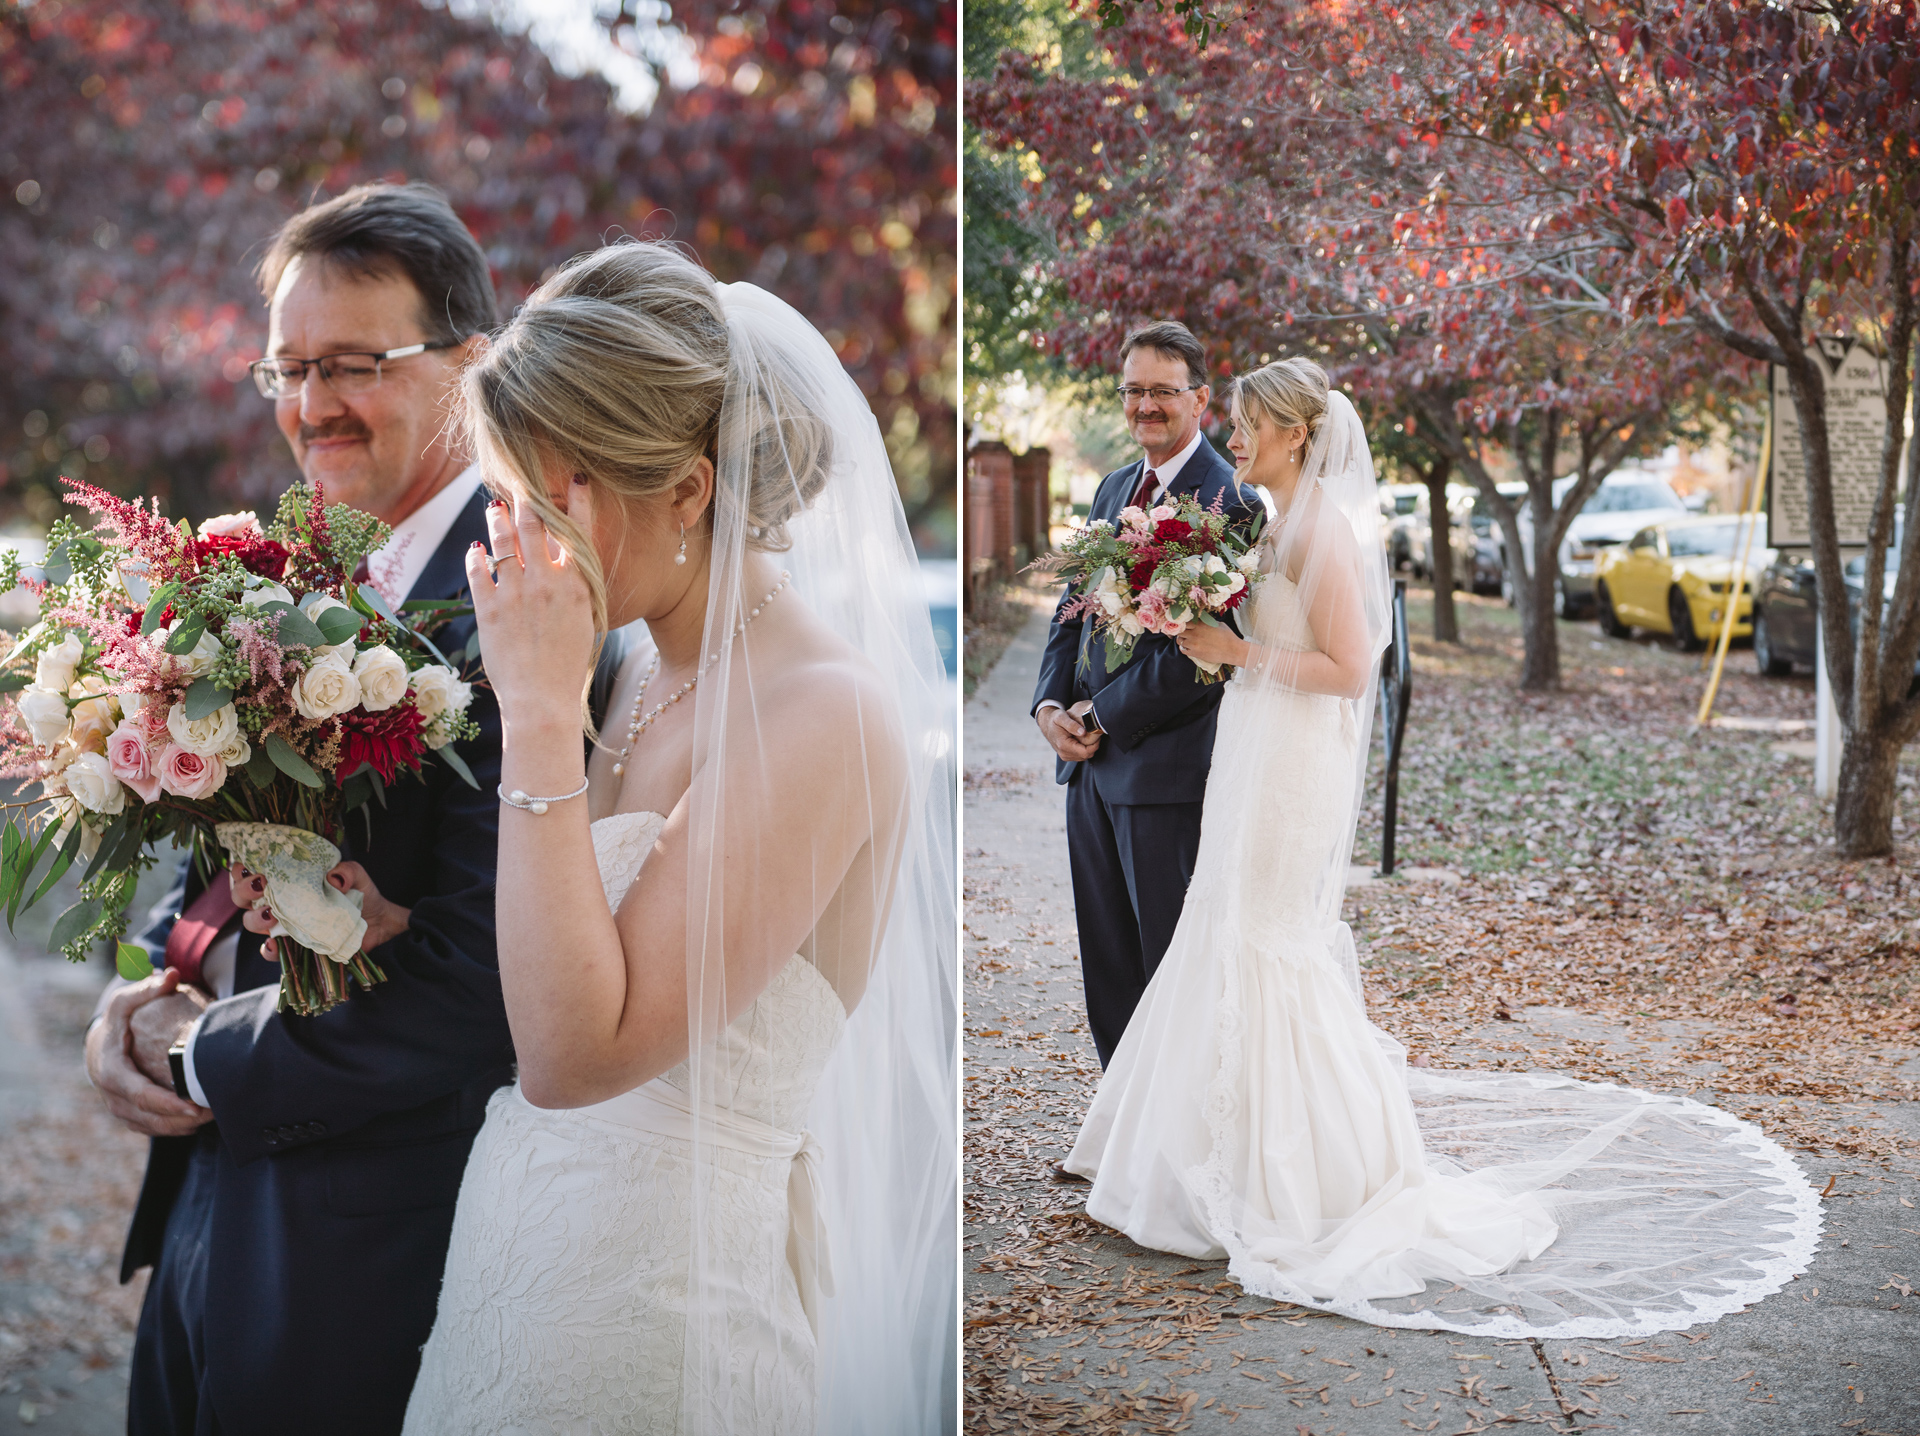 walk down the aisle with dad